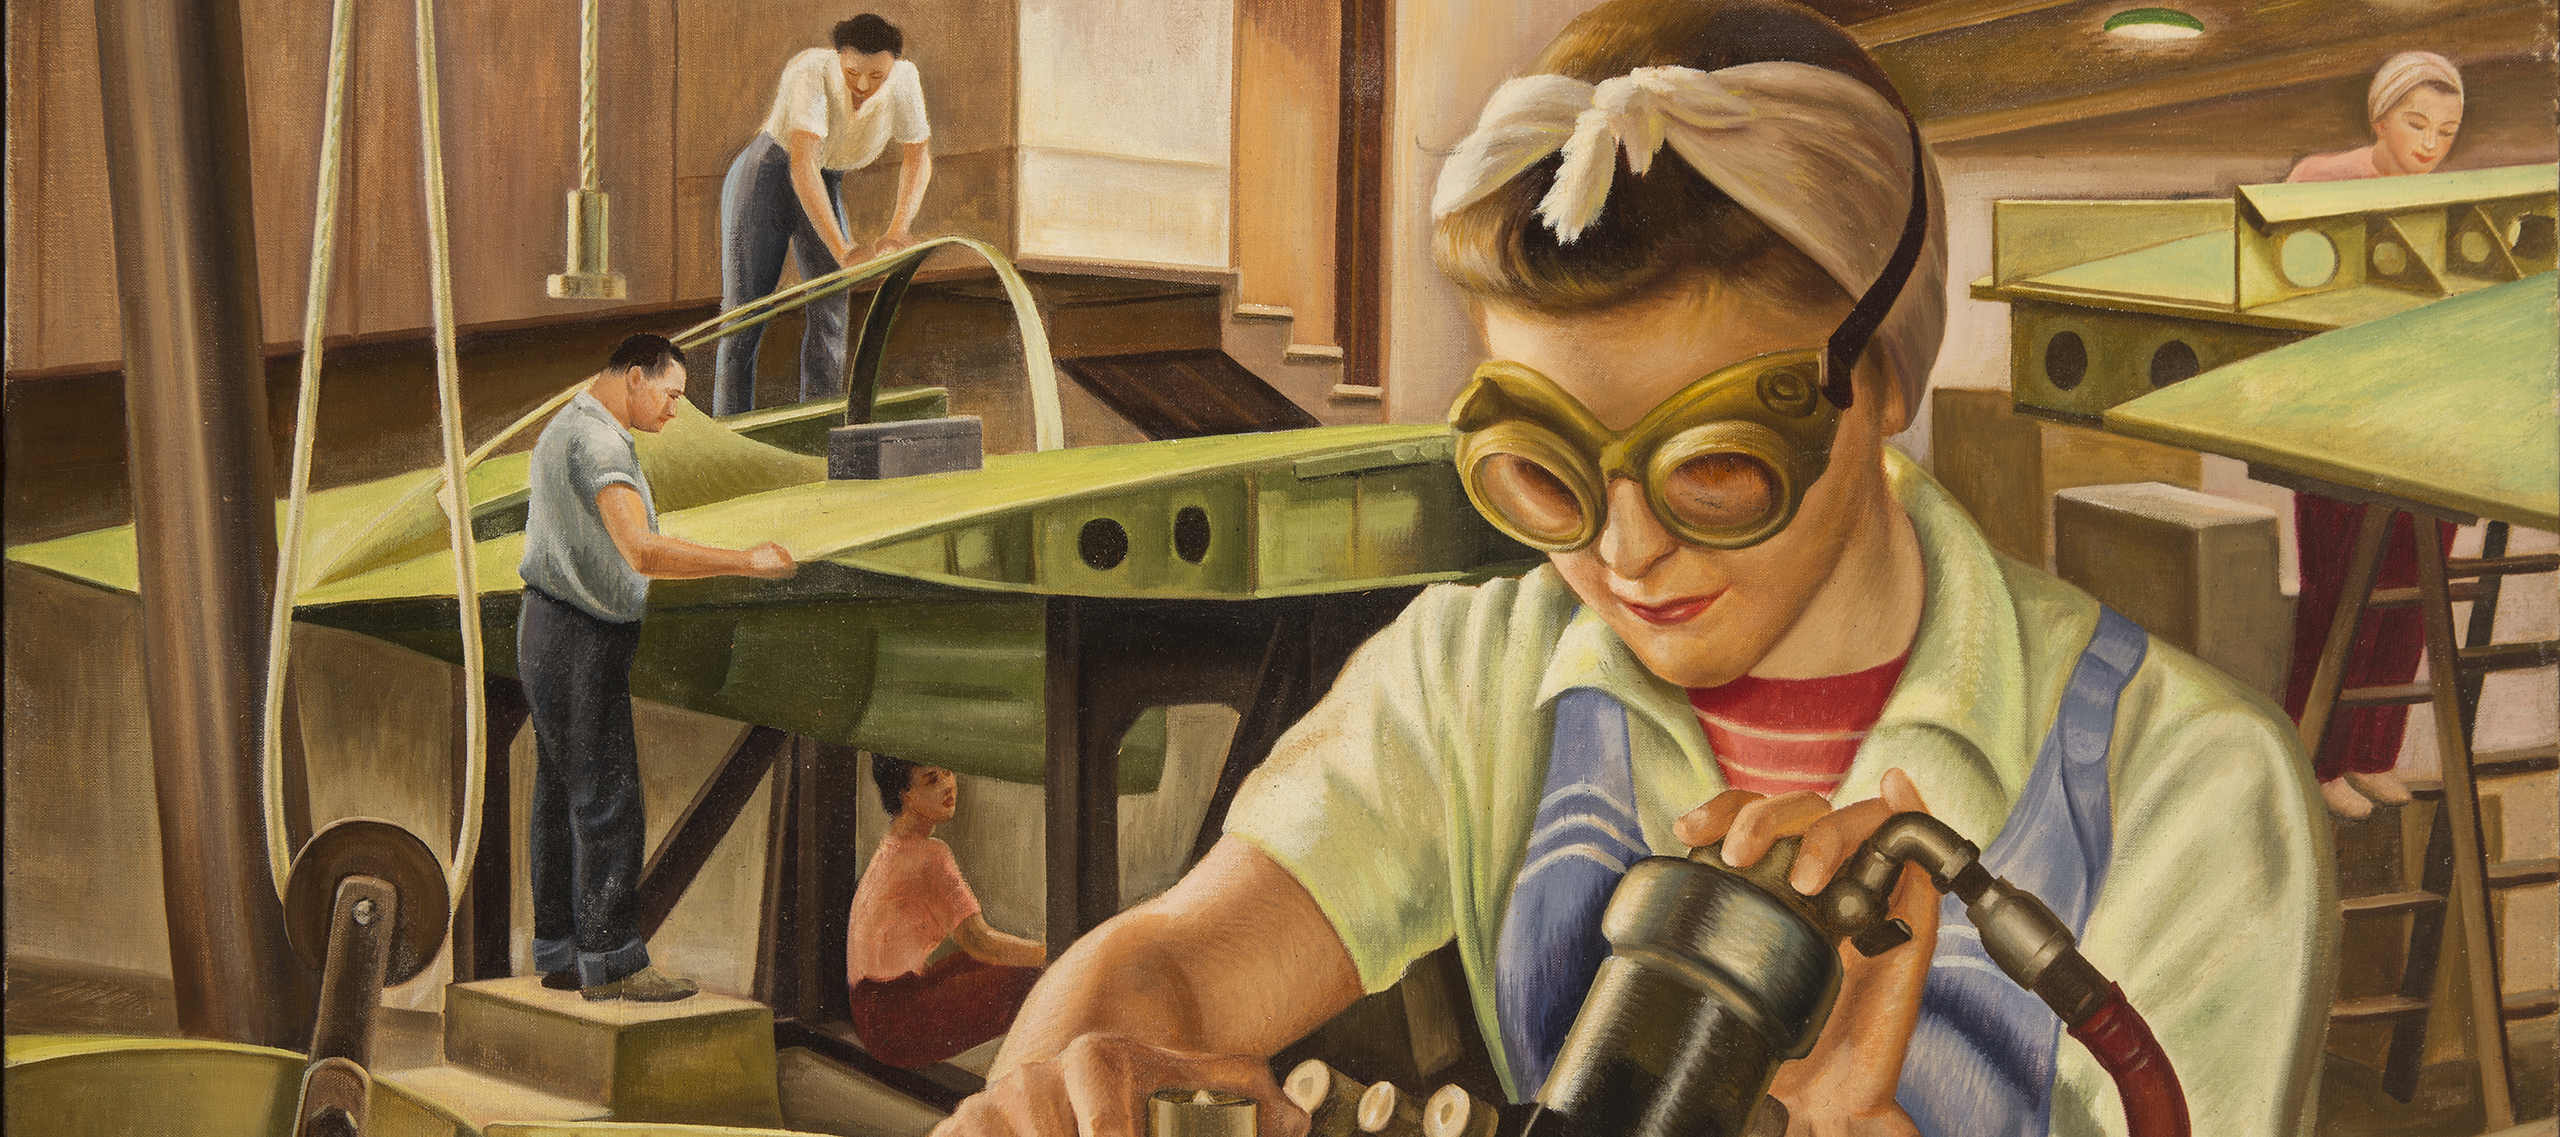 Painting of a light-skinned woman wearing safety goggles and working with machinery in an industrial warehouse setting. In the background, other light-skinned figures work on airplane parts.